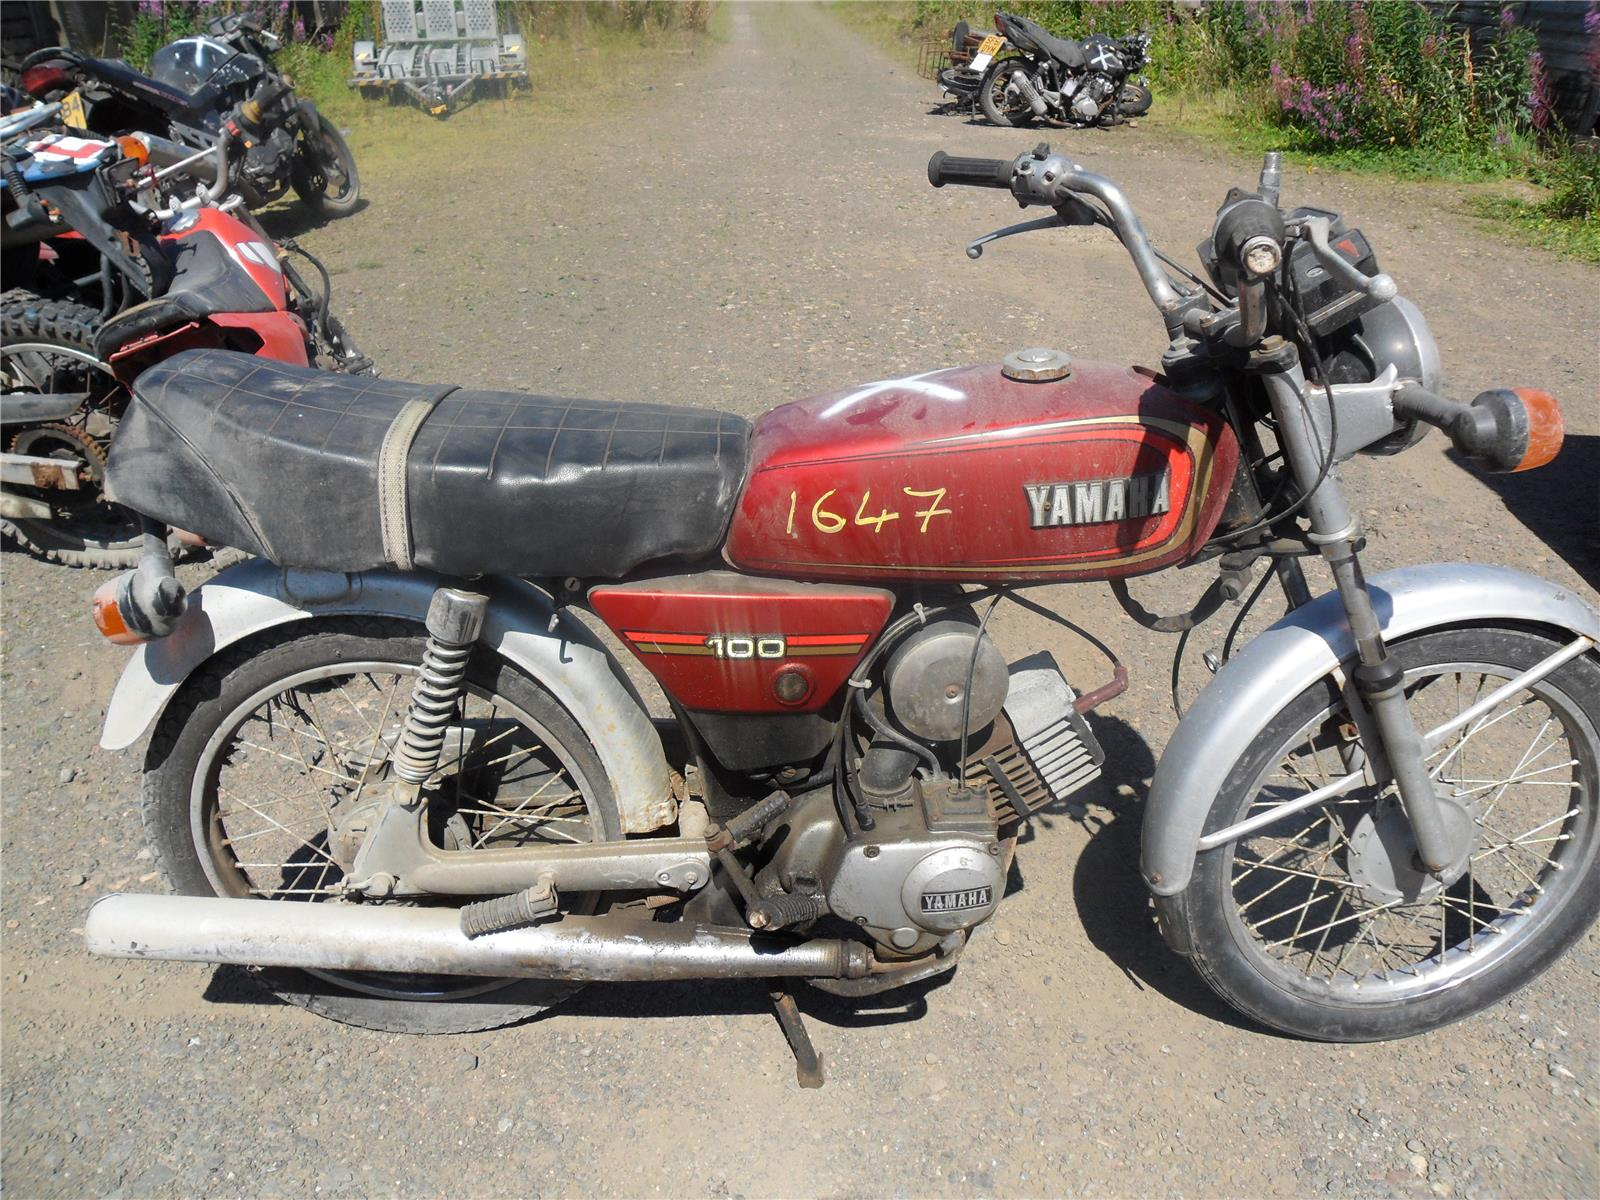 Manual Yamaha Yb 100 Snap Circuits Electromagnetism 1650 A Tino Projects Pinterest Array Deluxe Road Petrol Breaking For Used And Rh Scbmotorcycles Com